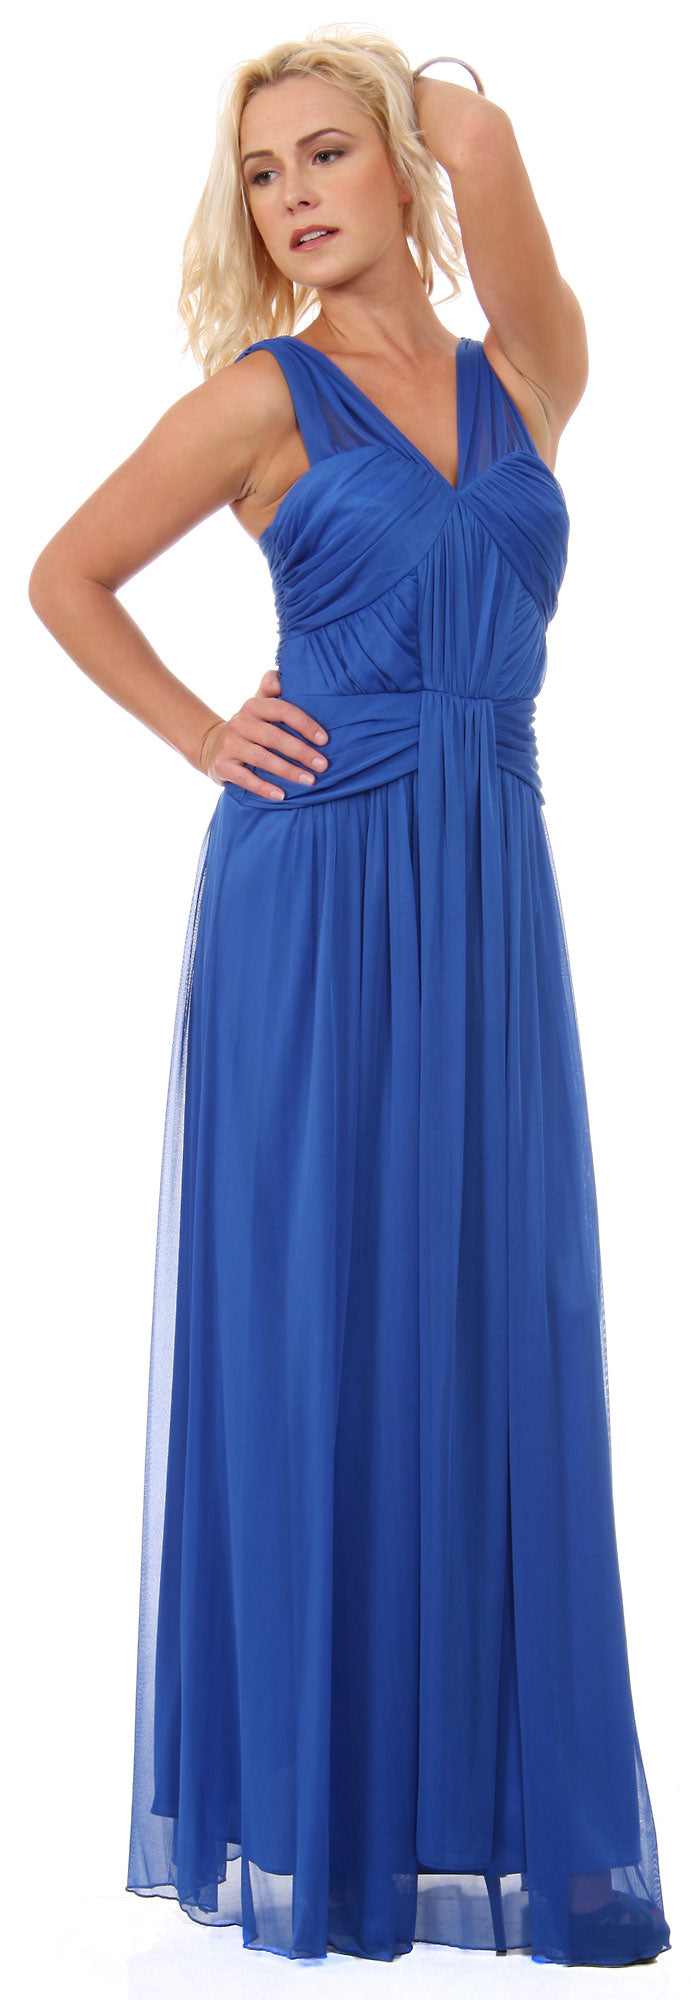 Main image of Ruched Bodice Long Formal Bridesmaid Evening Dress